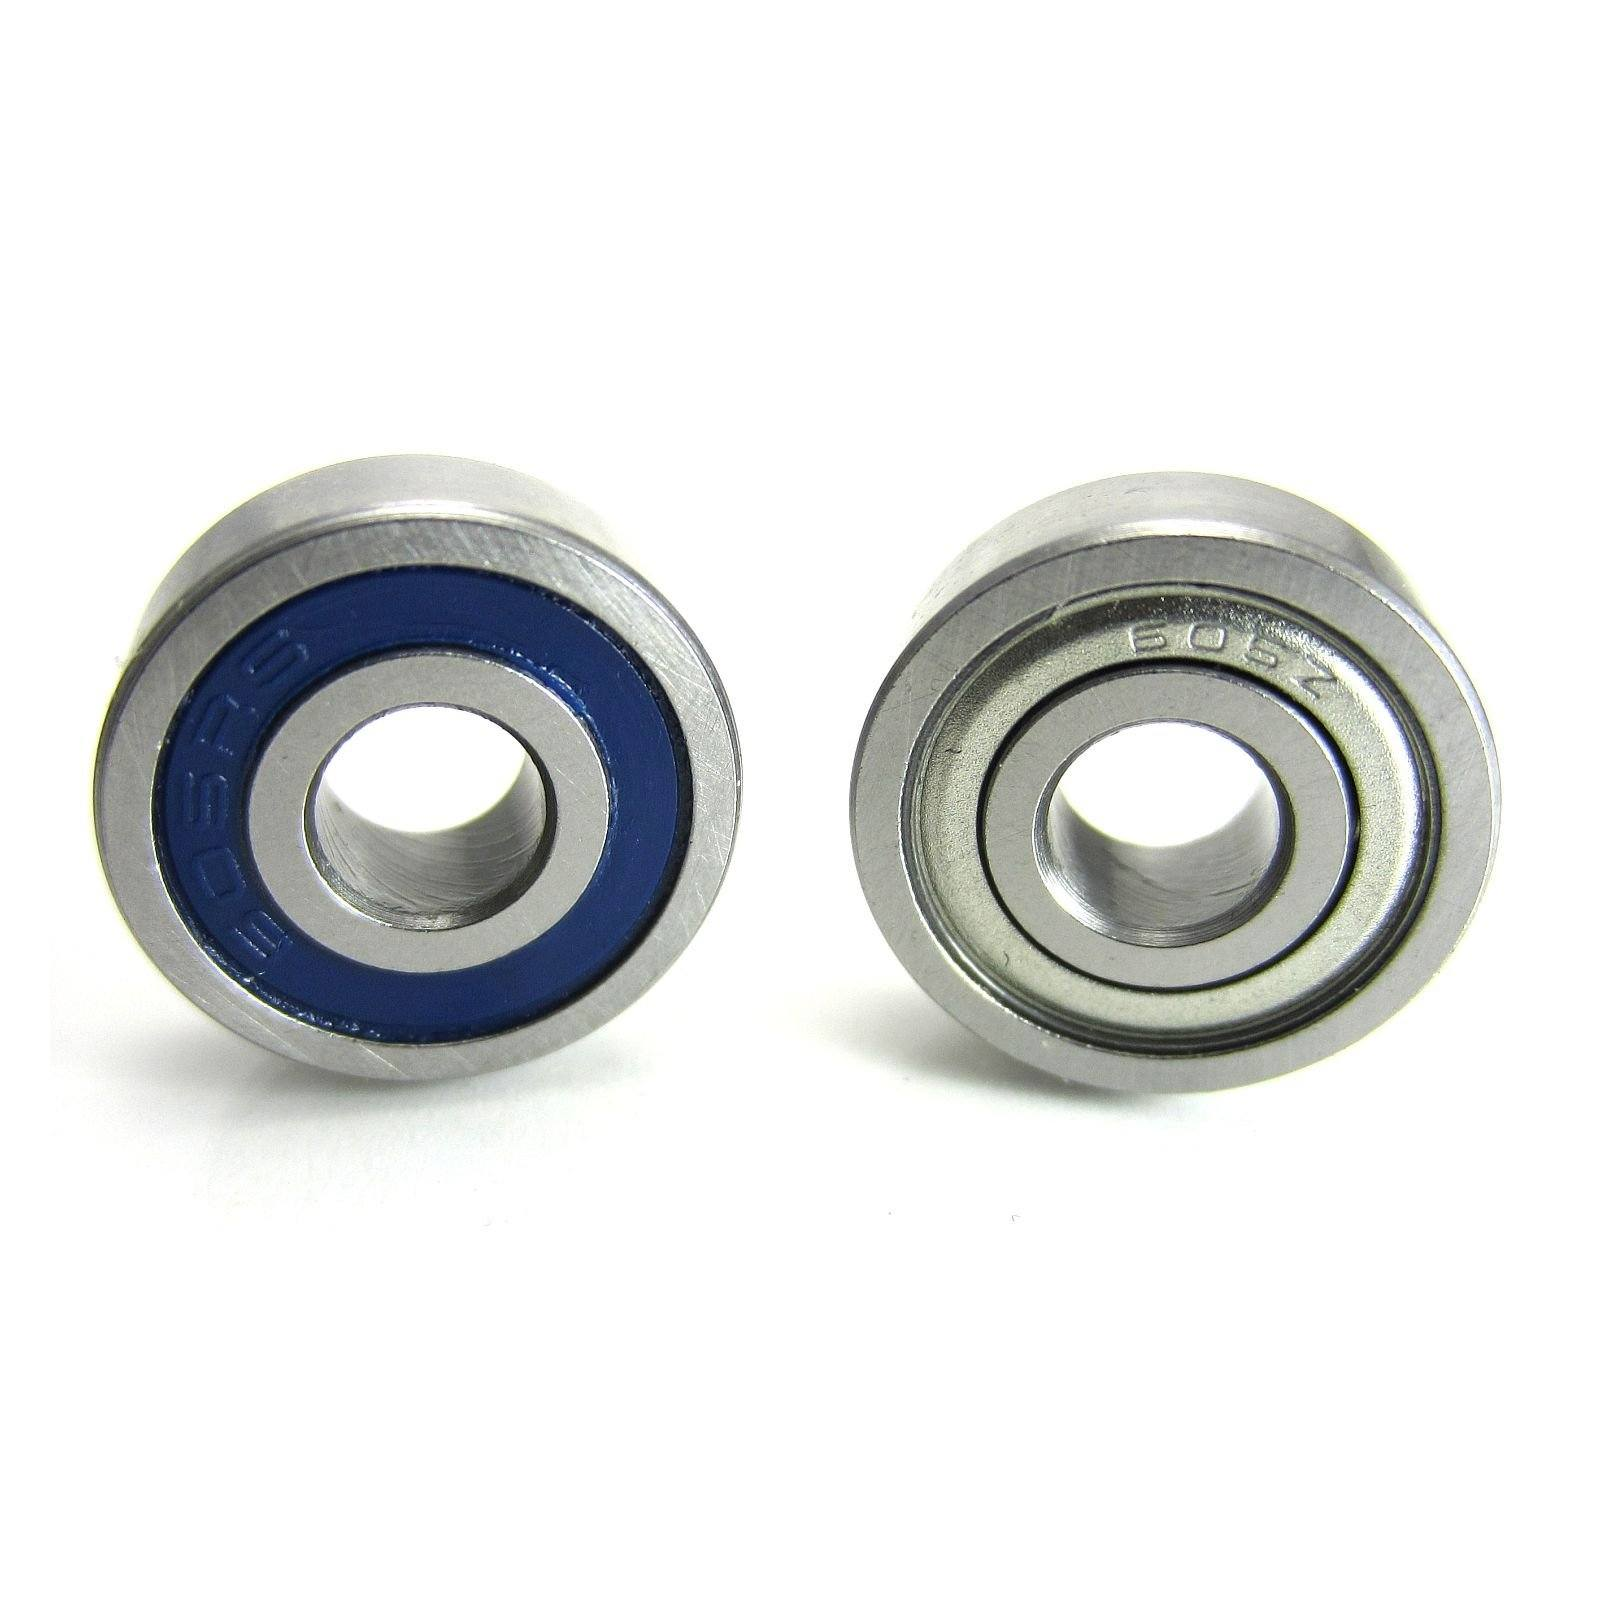 TRB RC Hybrid Ceramic Brushless Motor Ball Bearings CASTLE 1415 - trb-rc-bearings